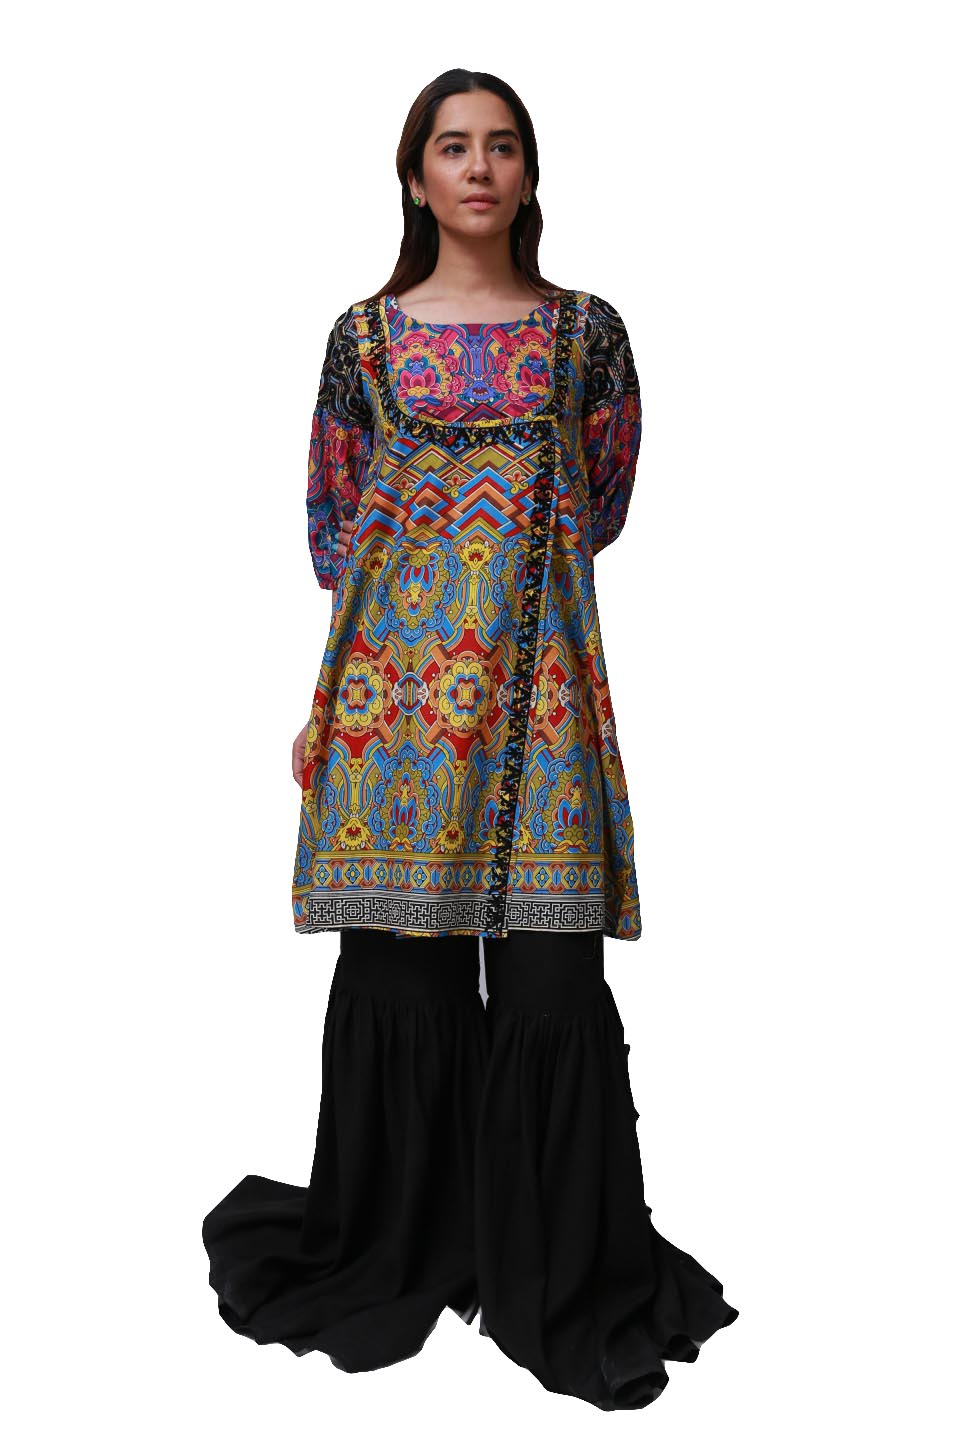 Generation - Multi Color Tibetan Plateau Overlapped Tunic